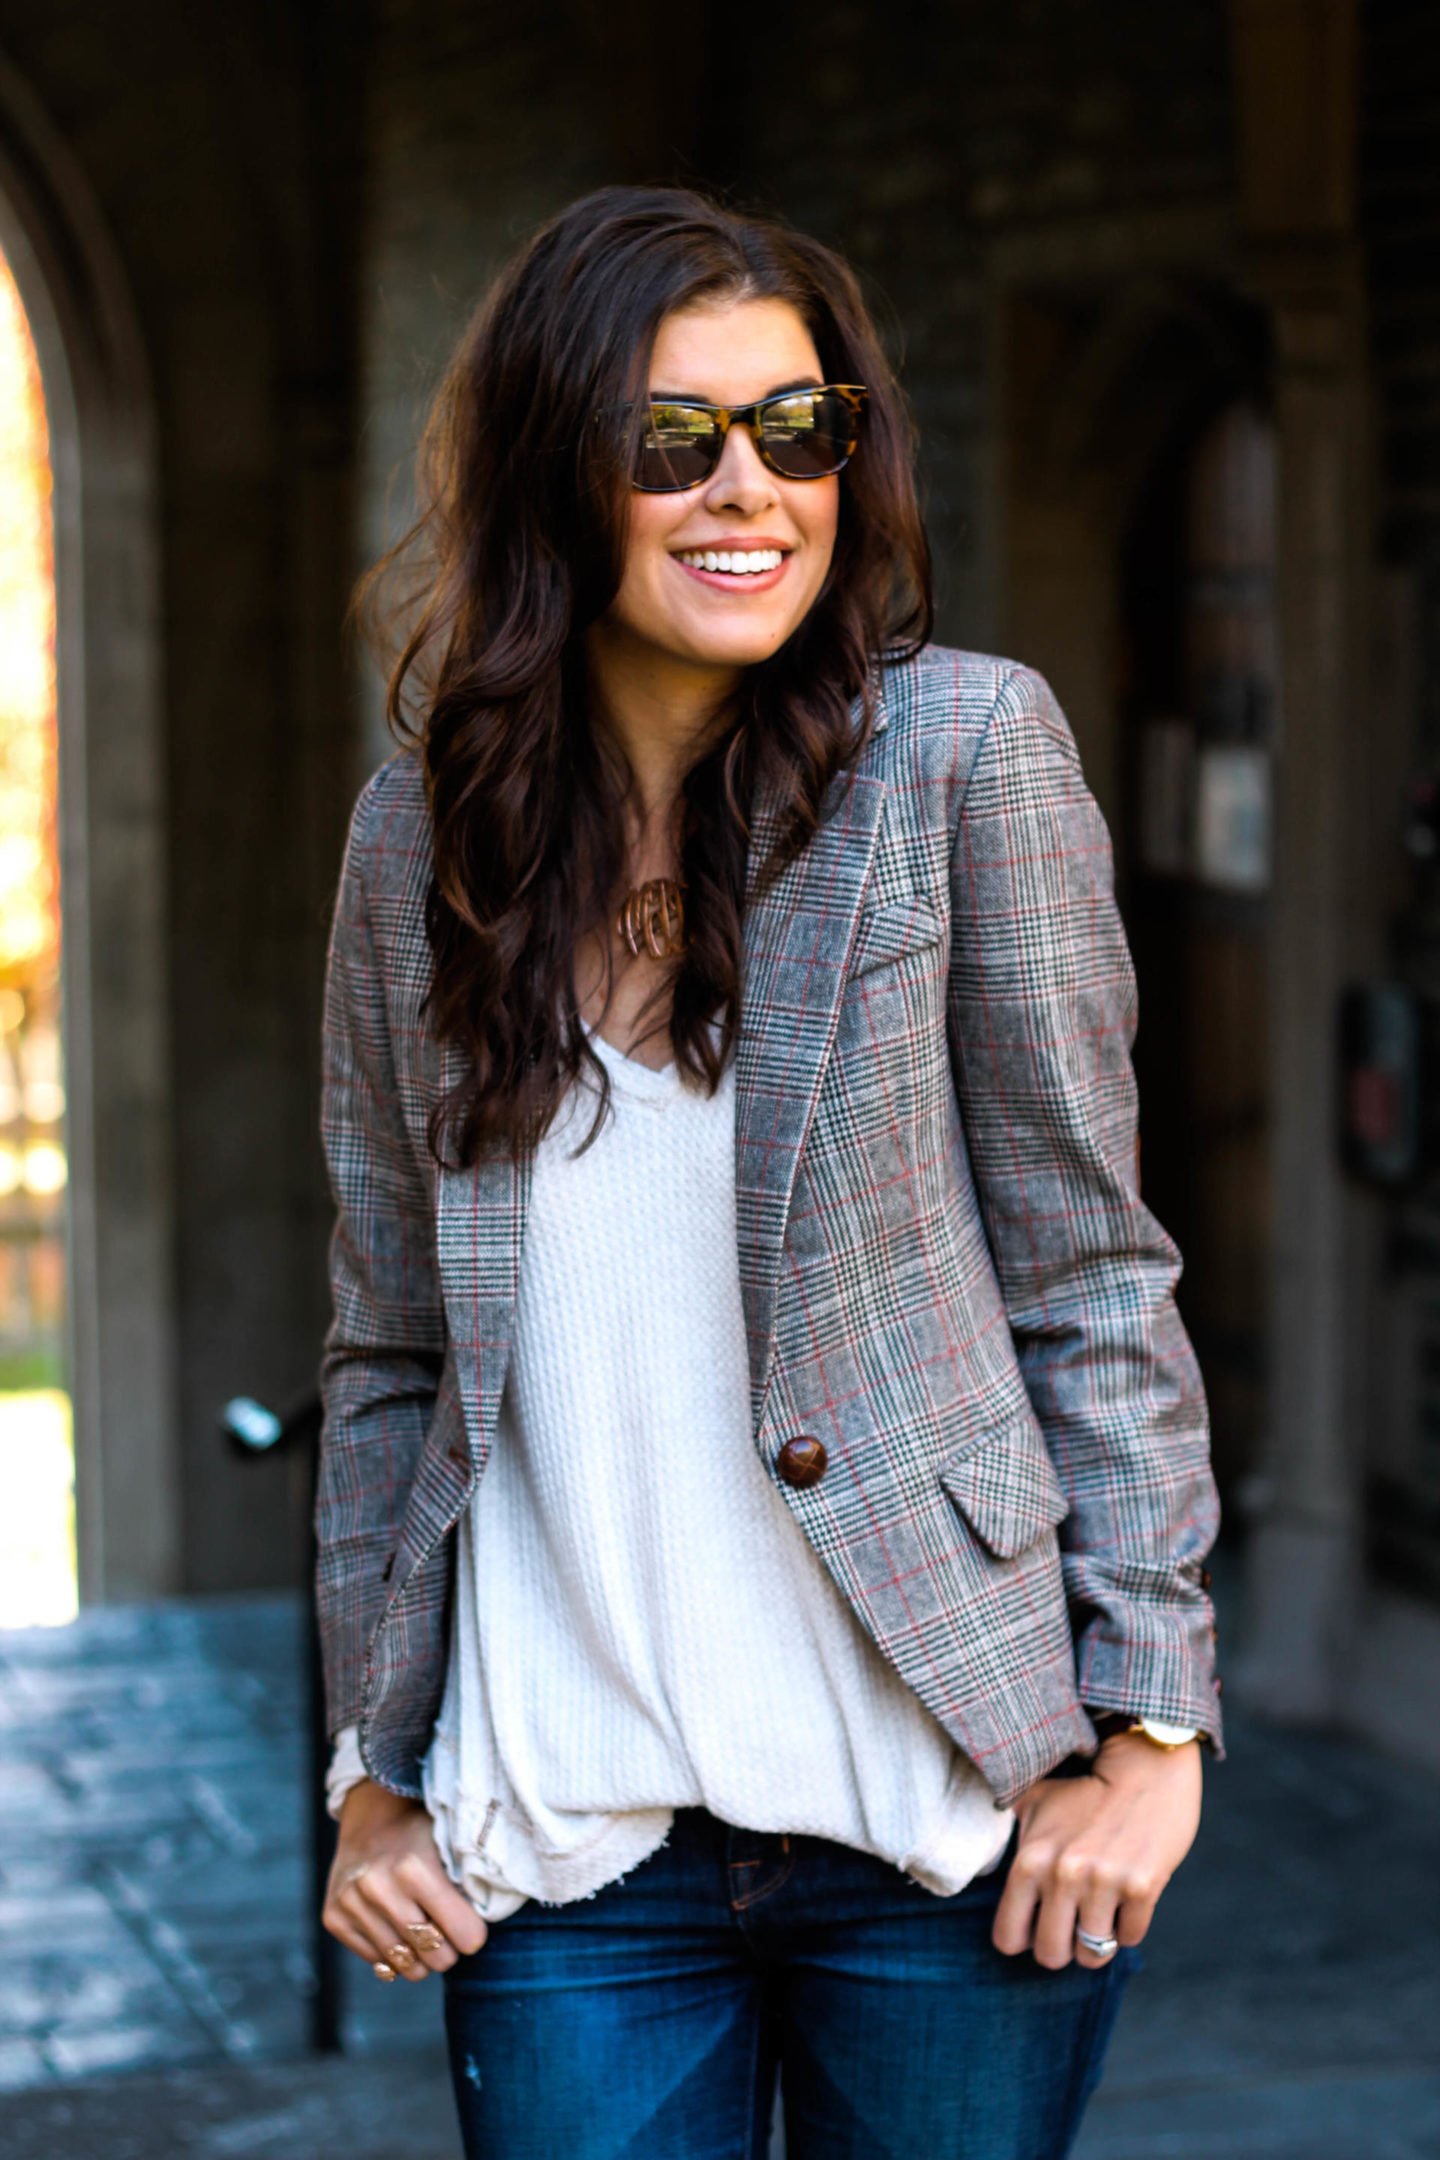 The Plaid Blazer Your Closet Needs by New York fashion blogger Style Waltz